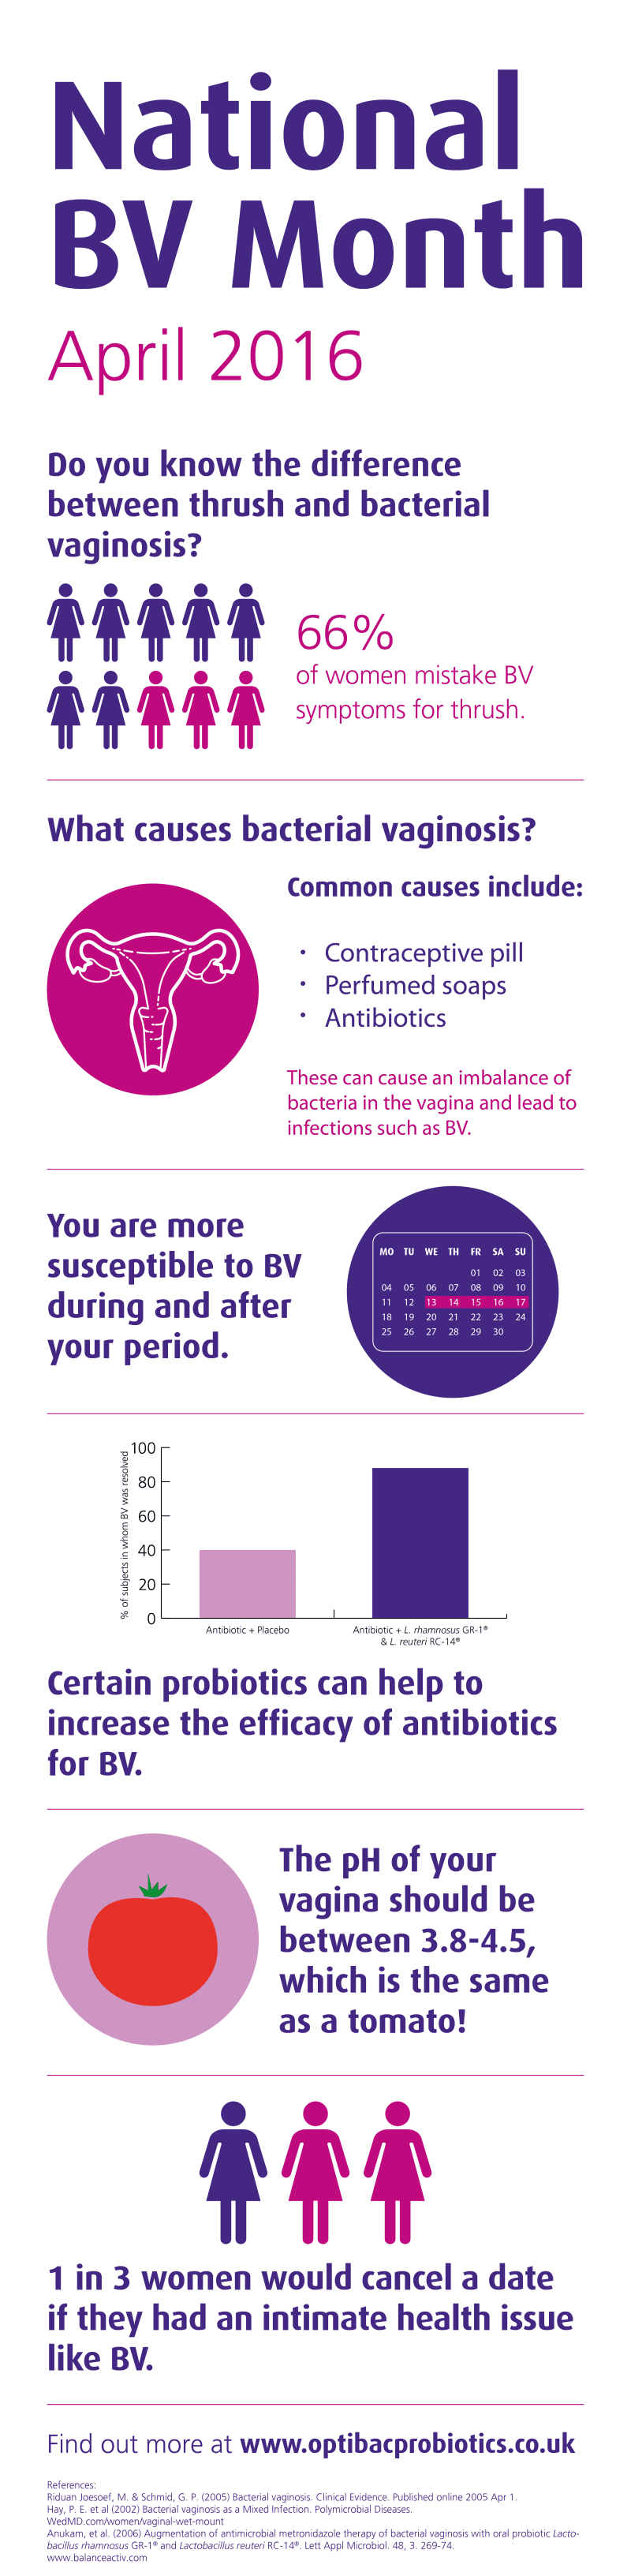 National BV month infographic | Probiotics Learning Lab